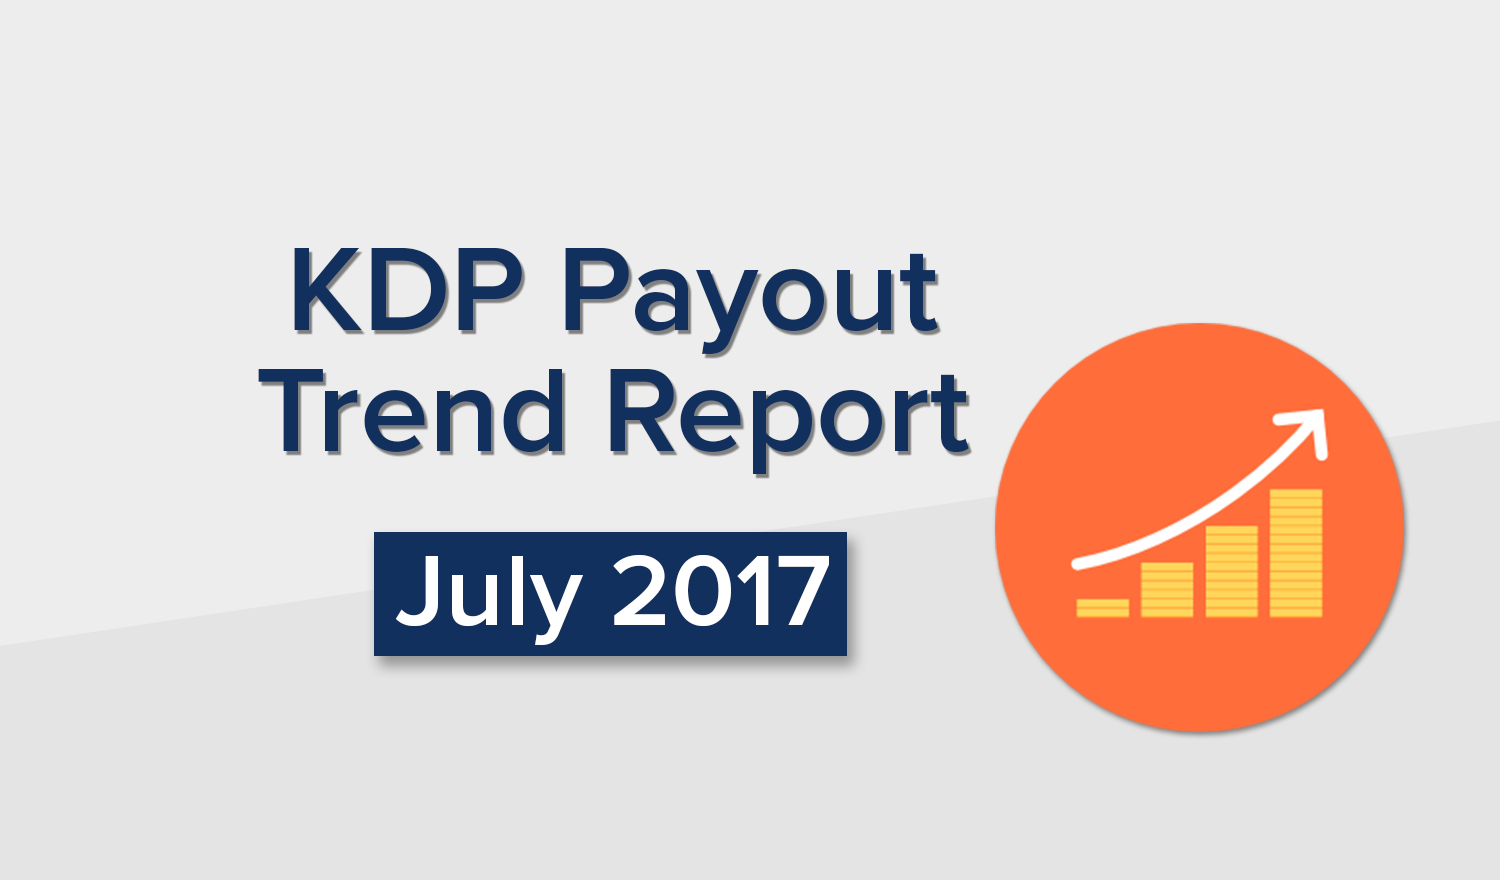 Kindle Unlimited KENP Payout for July 2017 – KDP Payout Trend Report